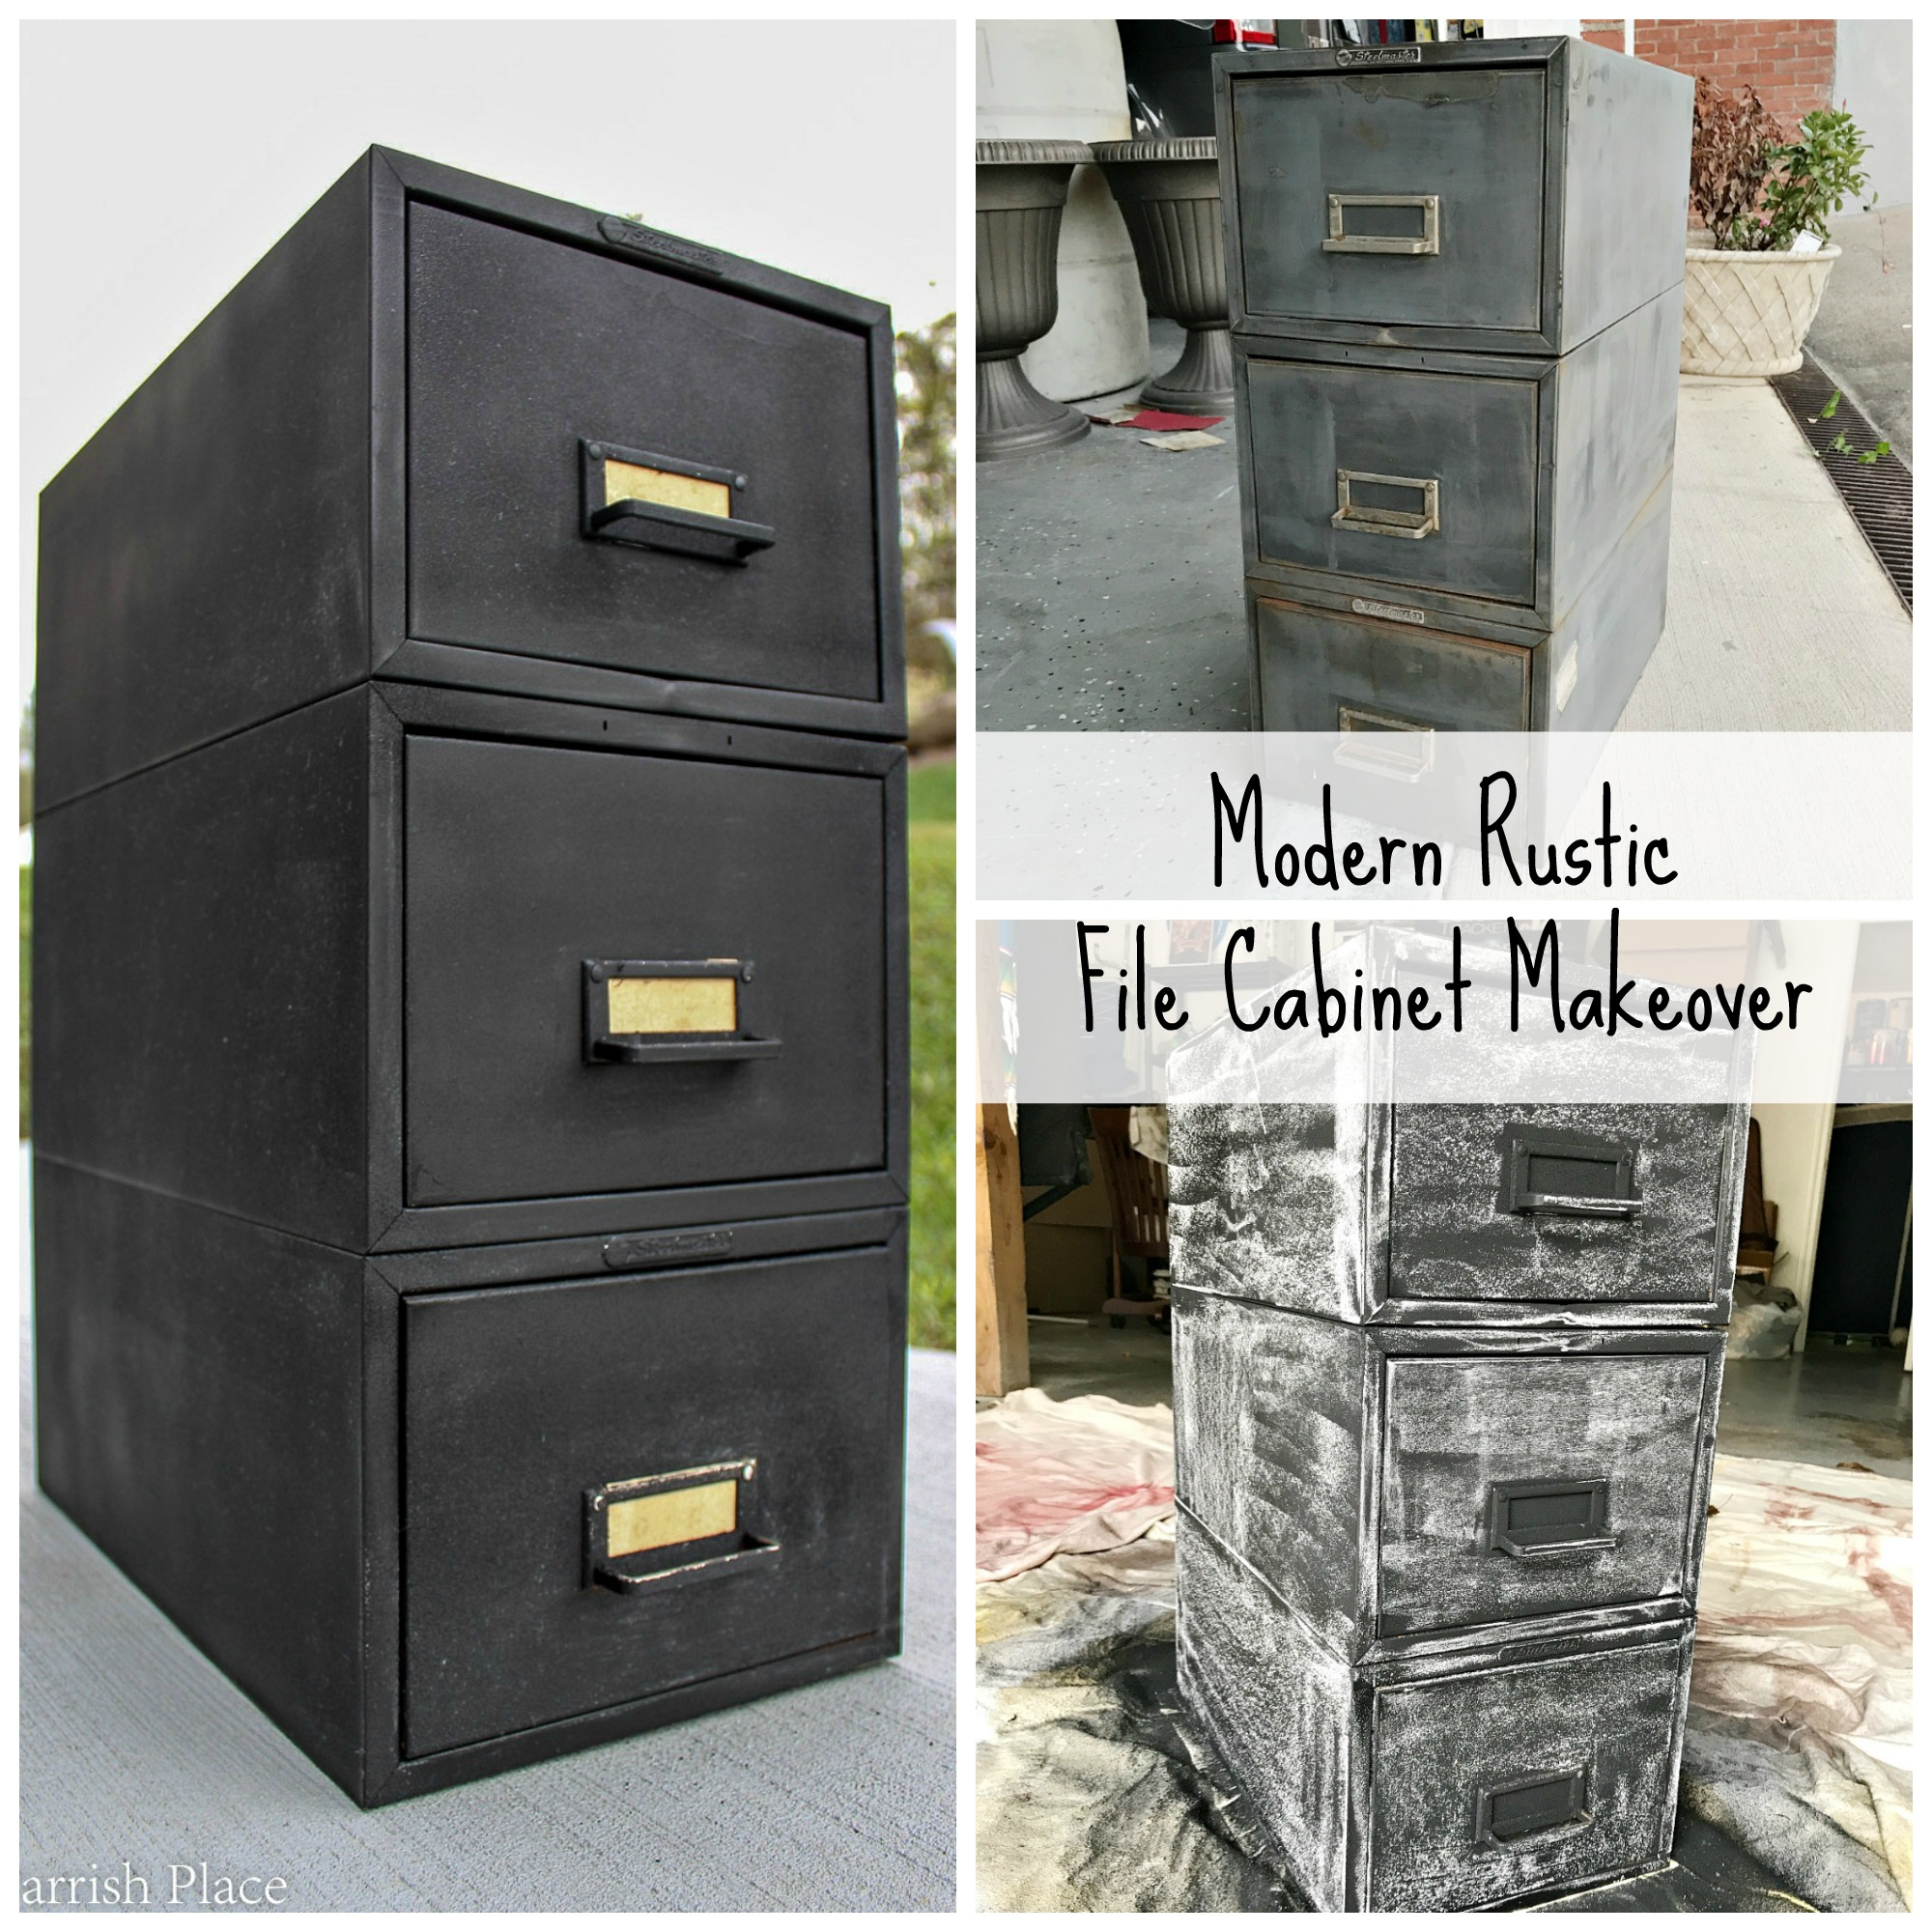 trash to treasure- modern rustic file cabinet makeover using chalkboard paint.